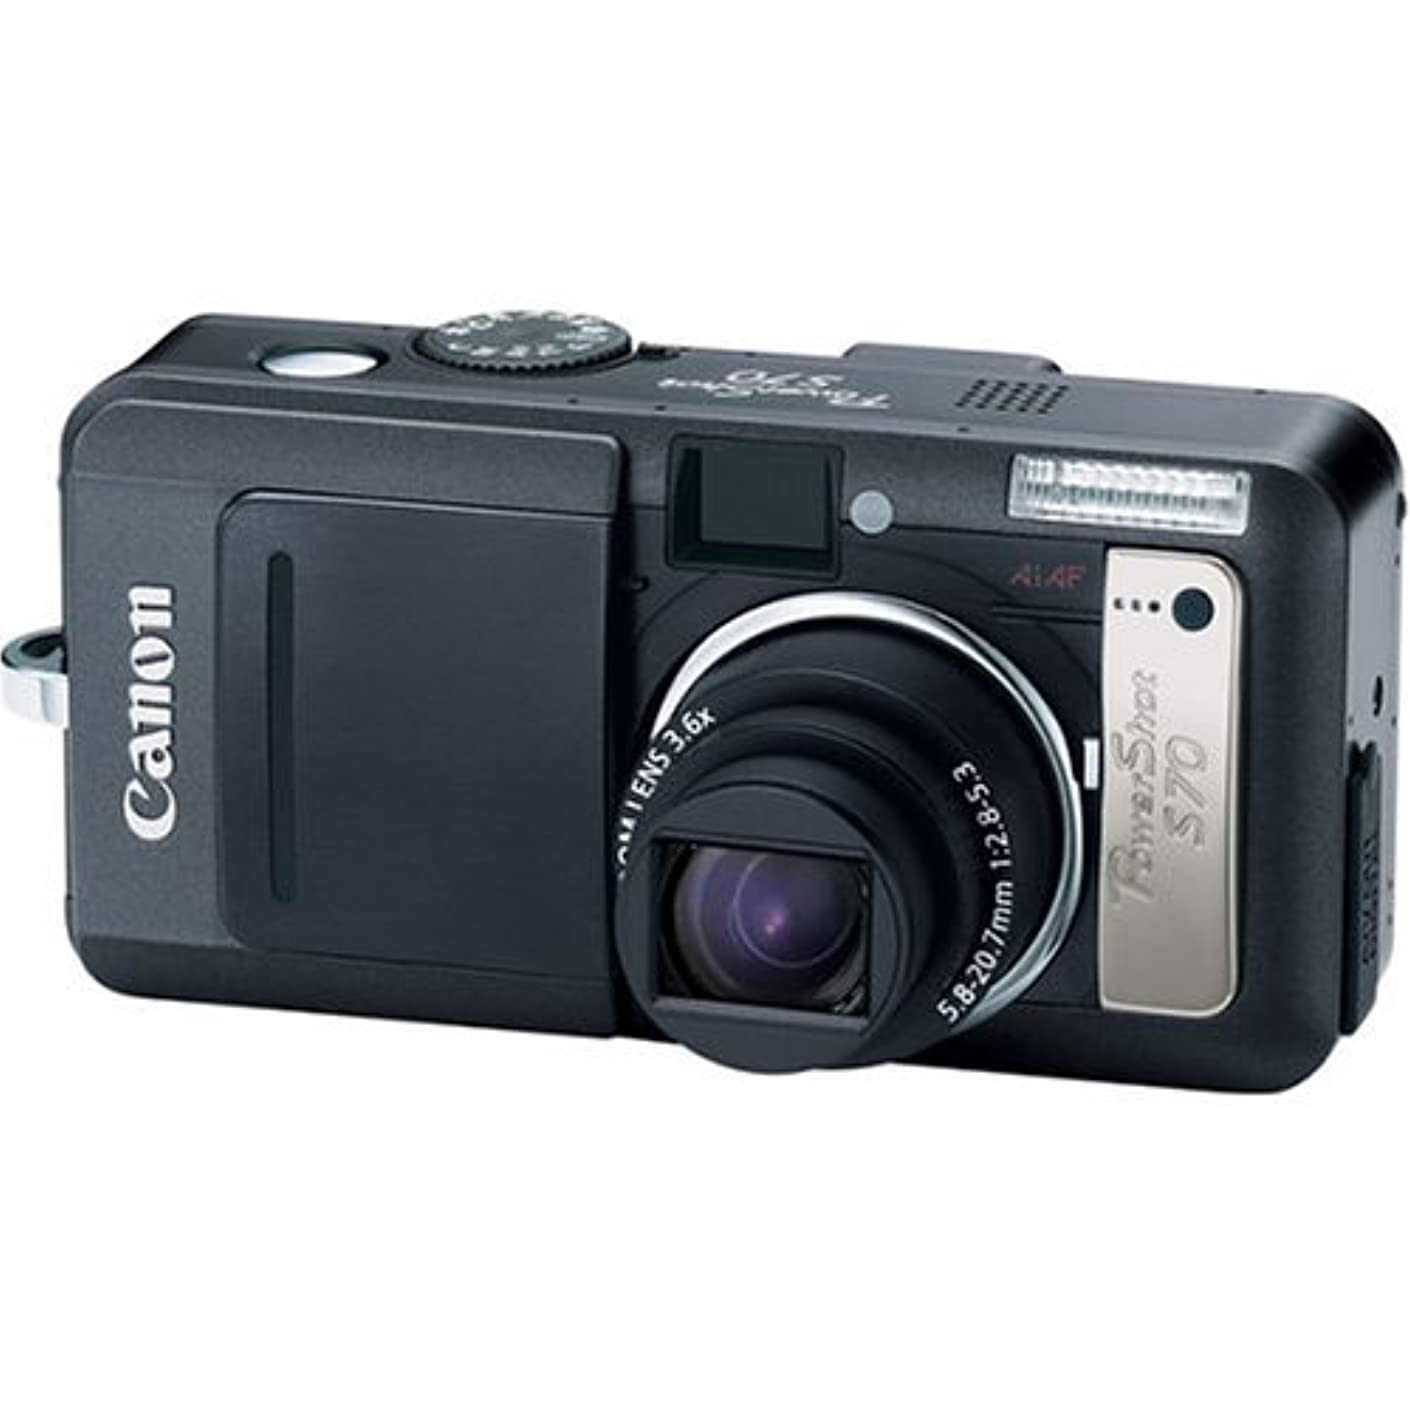 Canon PowerShot S70 7.1MP Digital Camera with 3.6x Optical Zoom